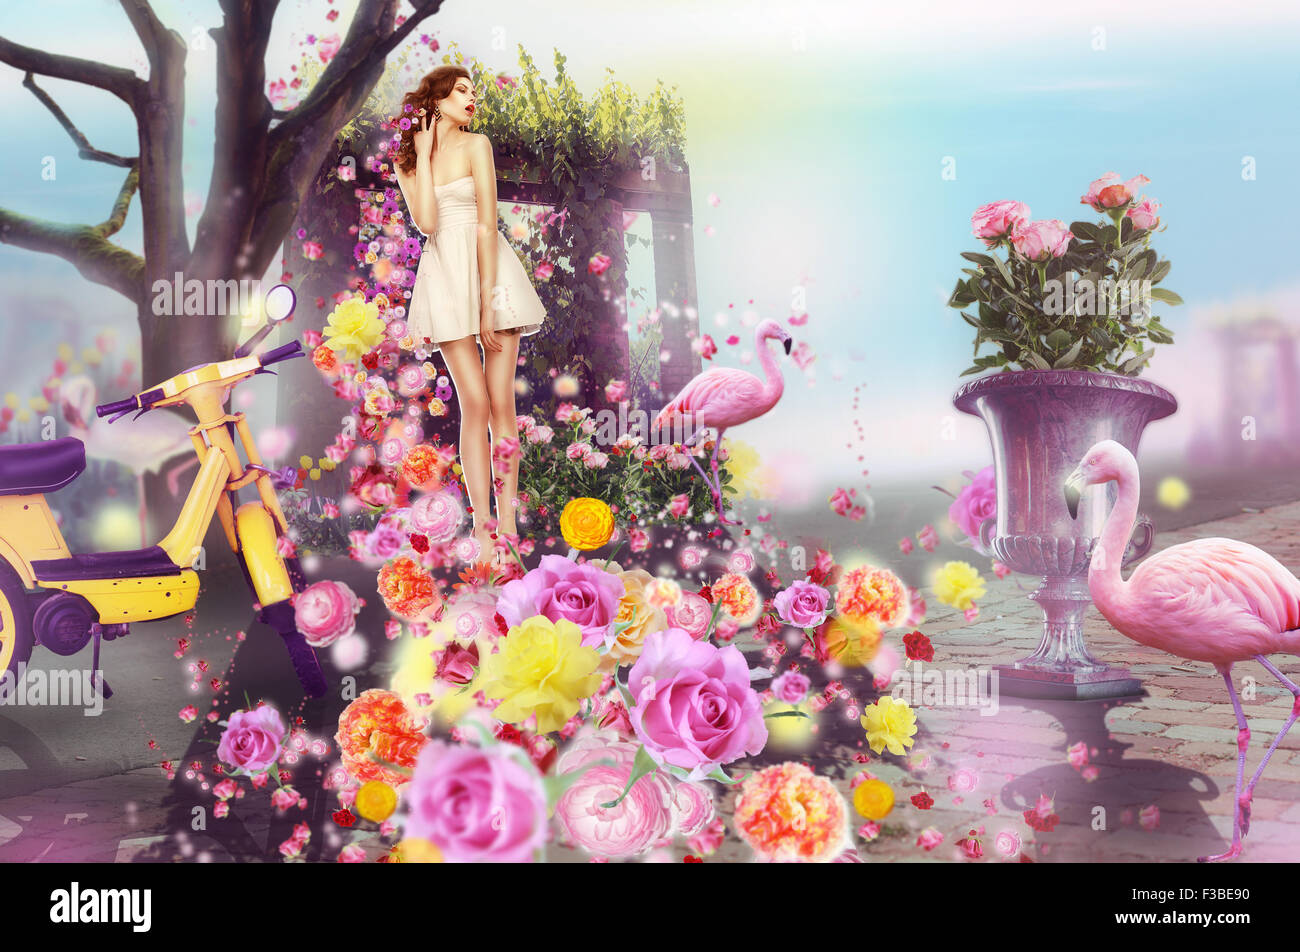 Creative Concept. Visual Arts. Woman and Flowers - Stock Image